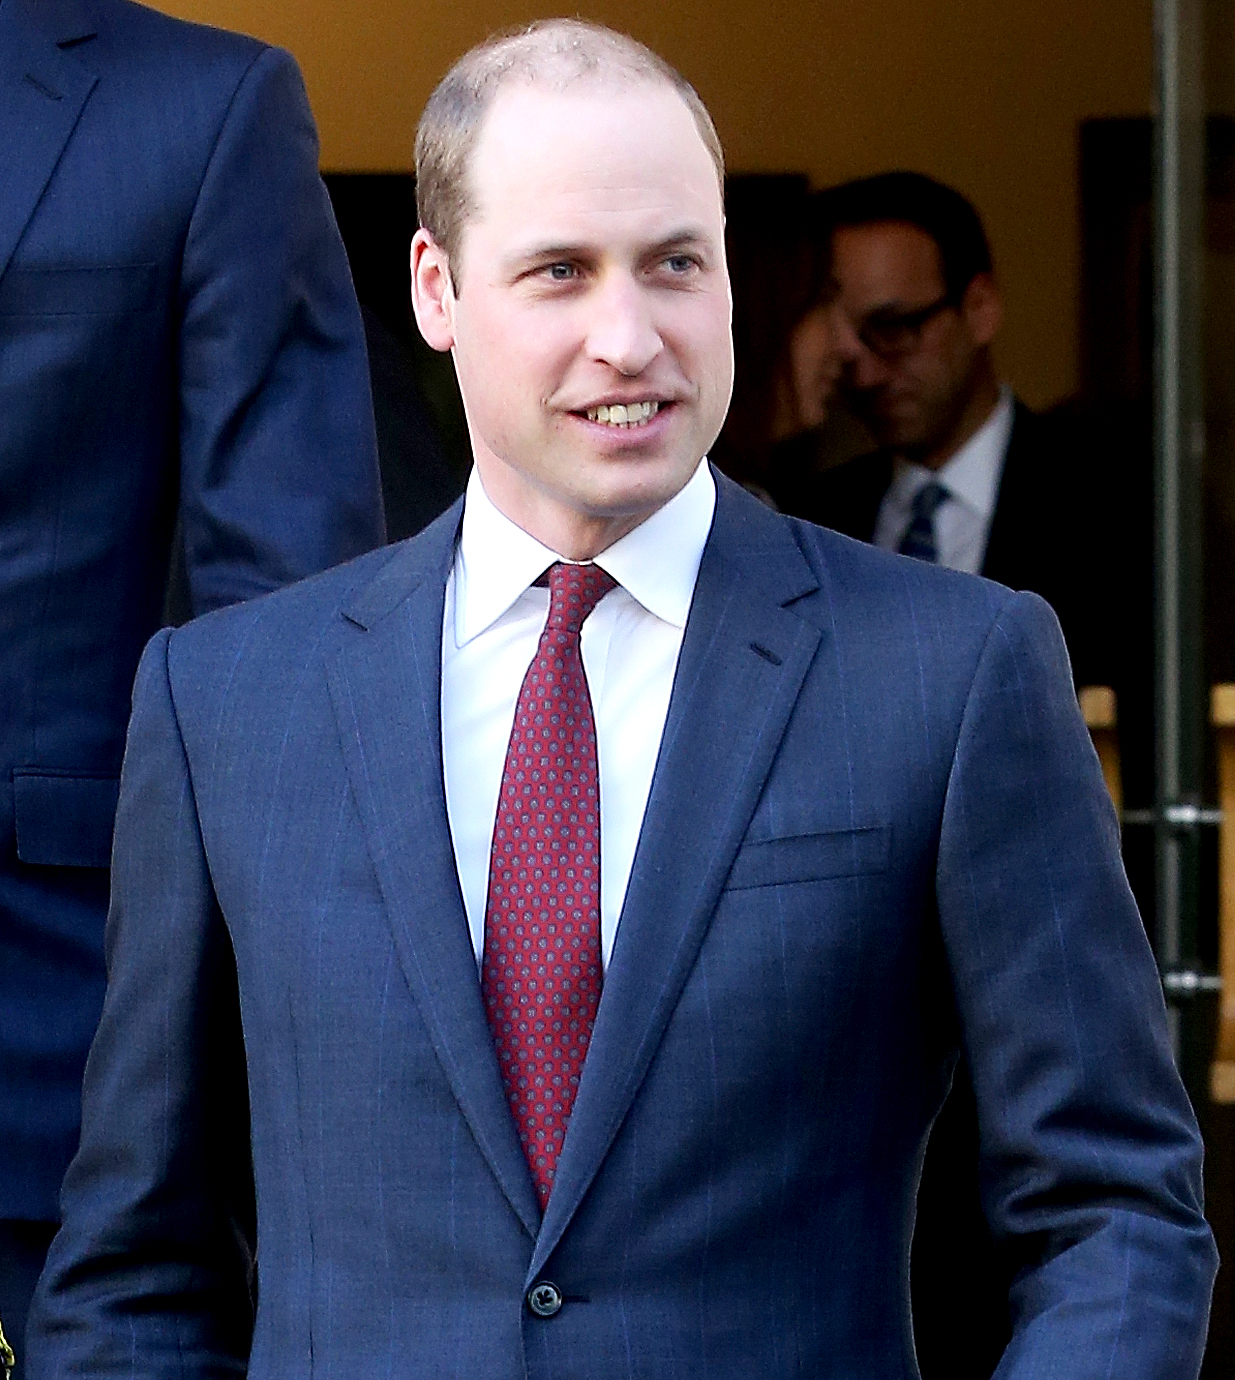 Prince William attends a briefing to announce plans for Heads Together ahead of the 2017 Virgin Money London Marathon at ICA on January 17, 2017 in London, England.